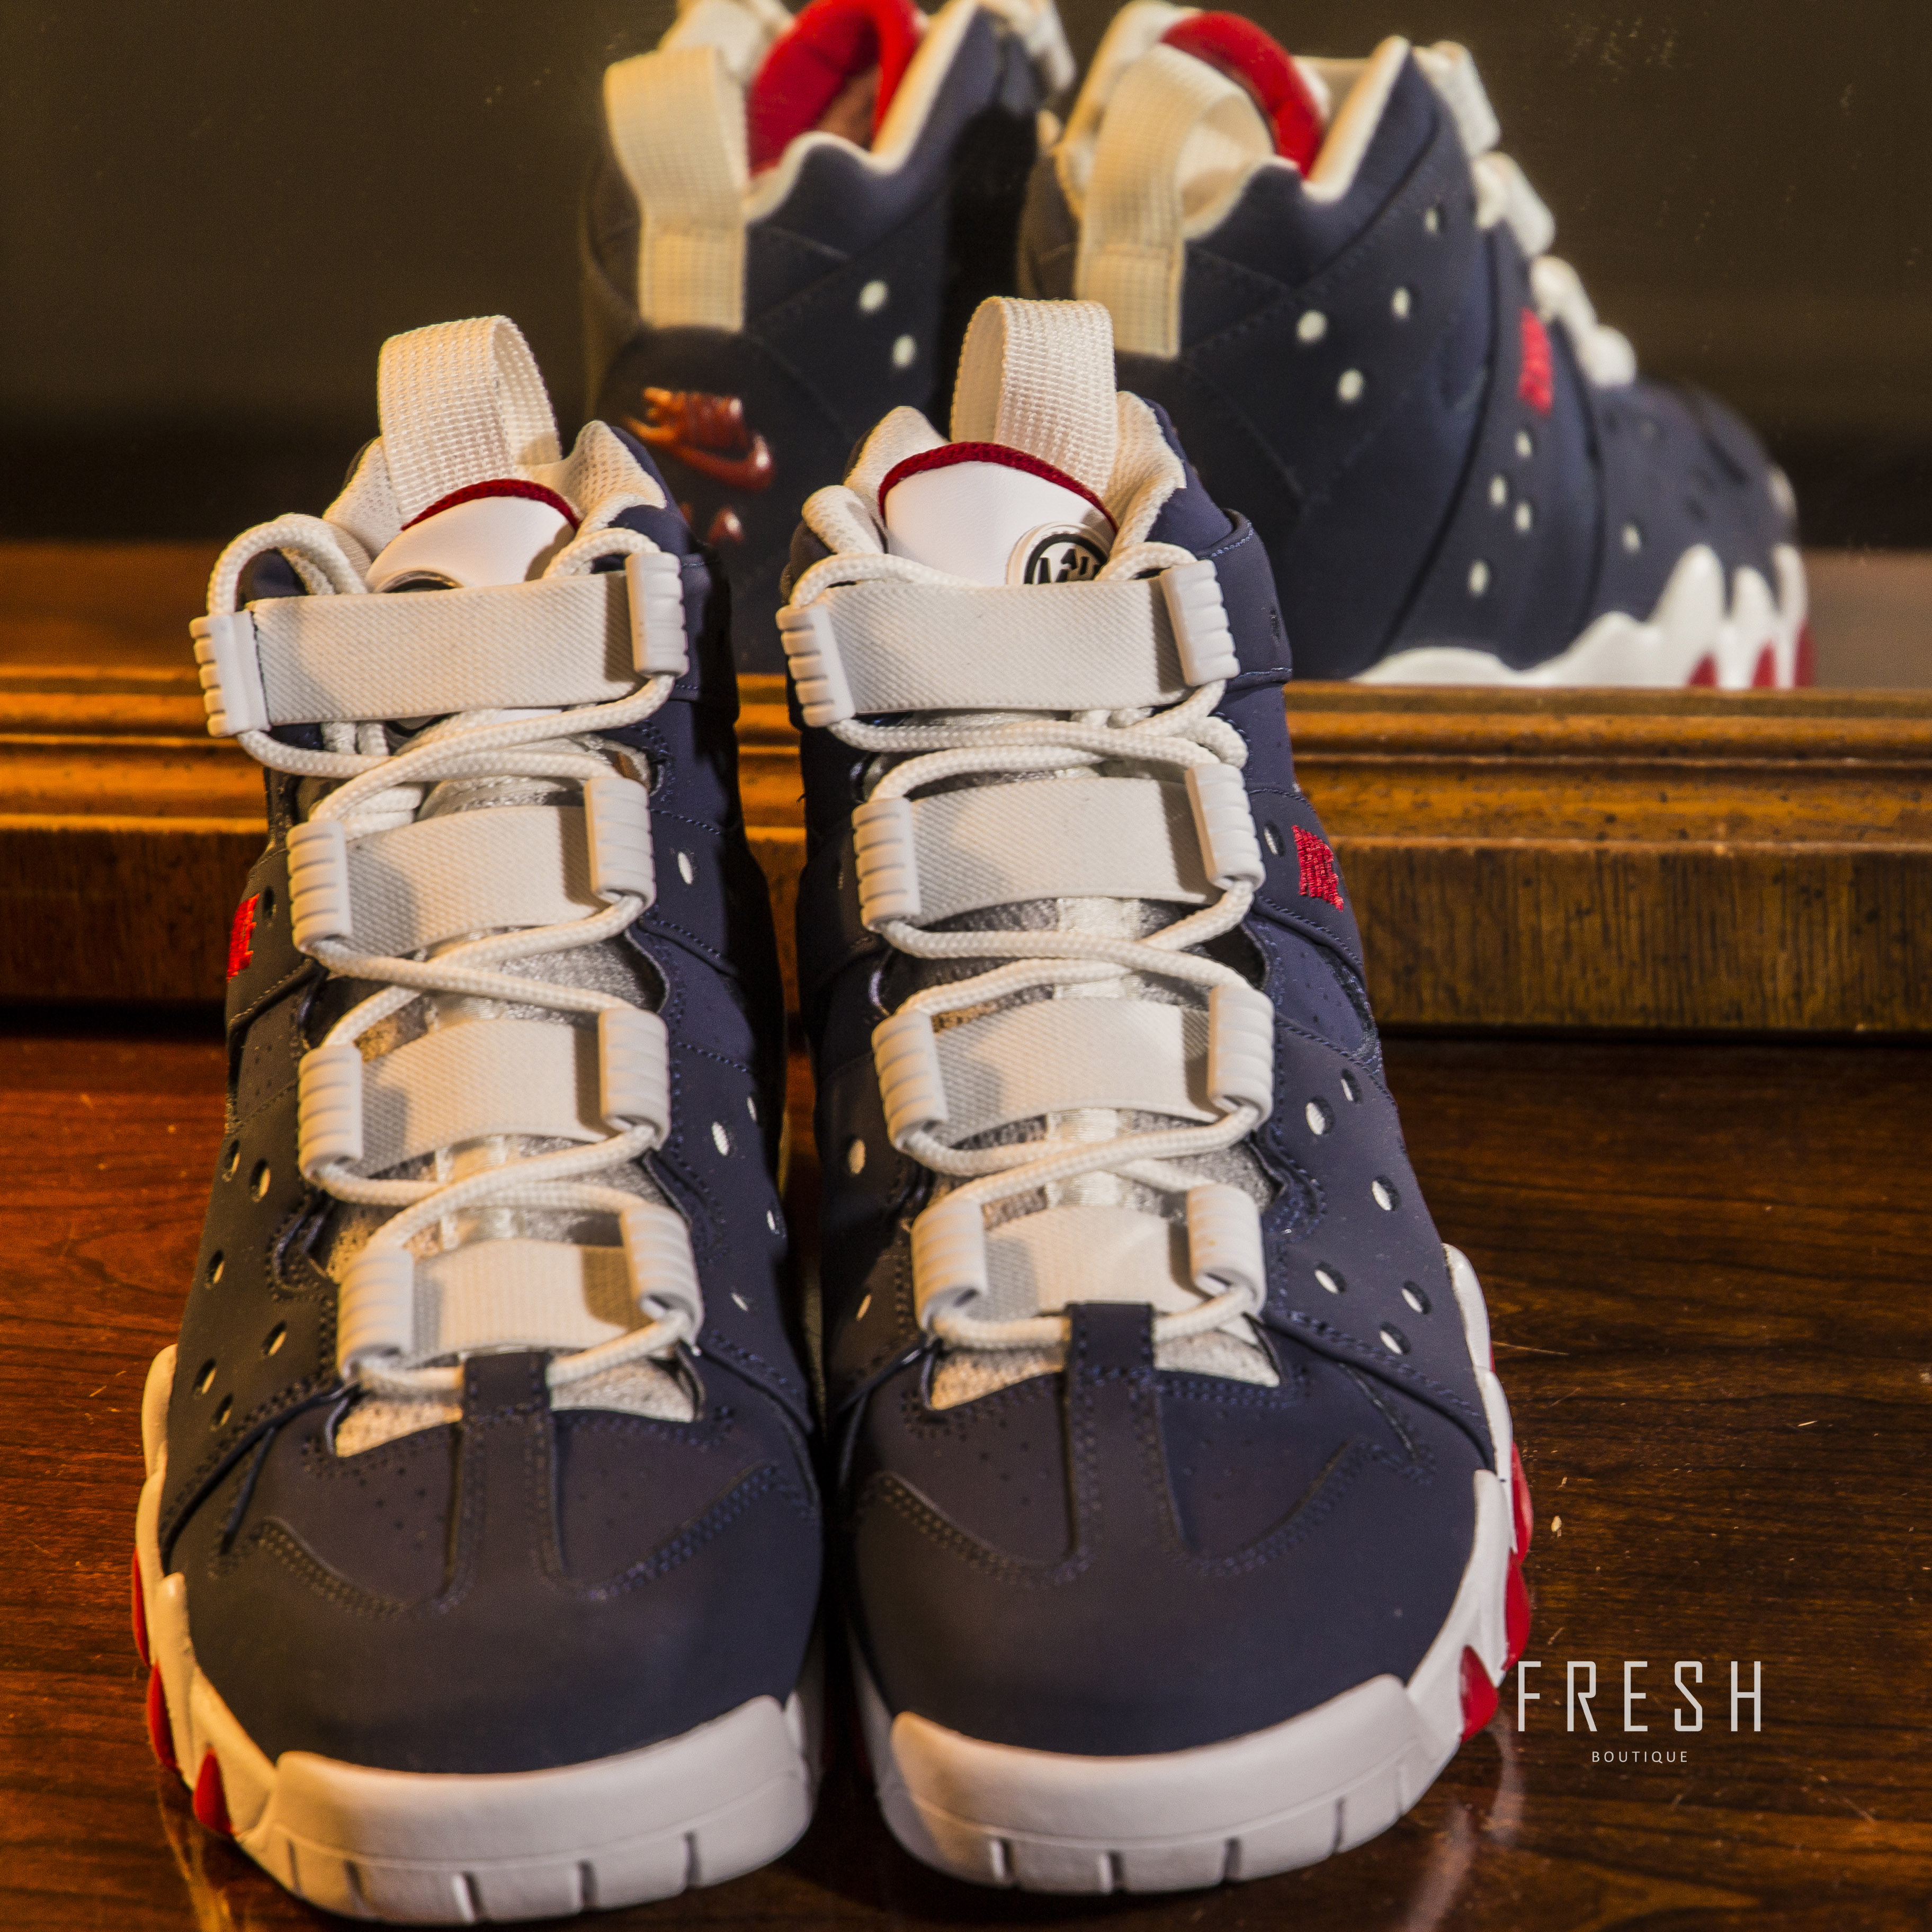 super popular a2b0f d3ada ... official store nike air max2 cb 94 obsidian gym red white fresh sneaker  boutique 0bdc0 7c52c